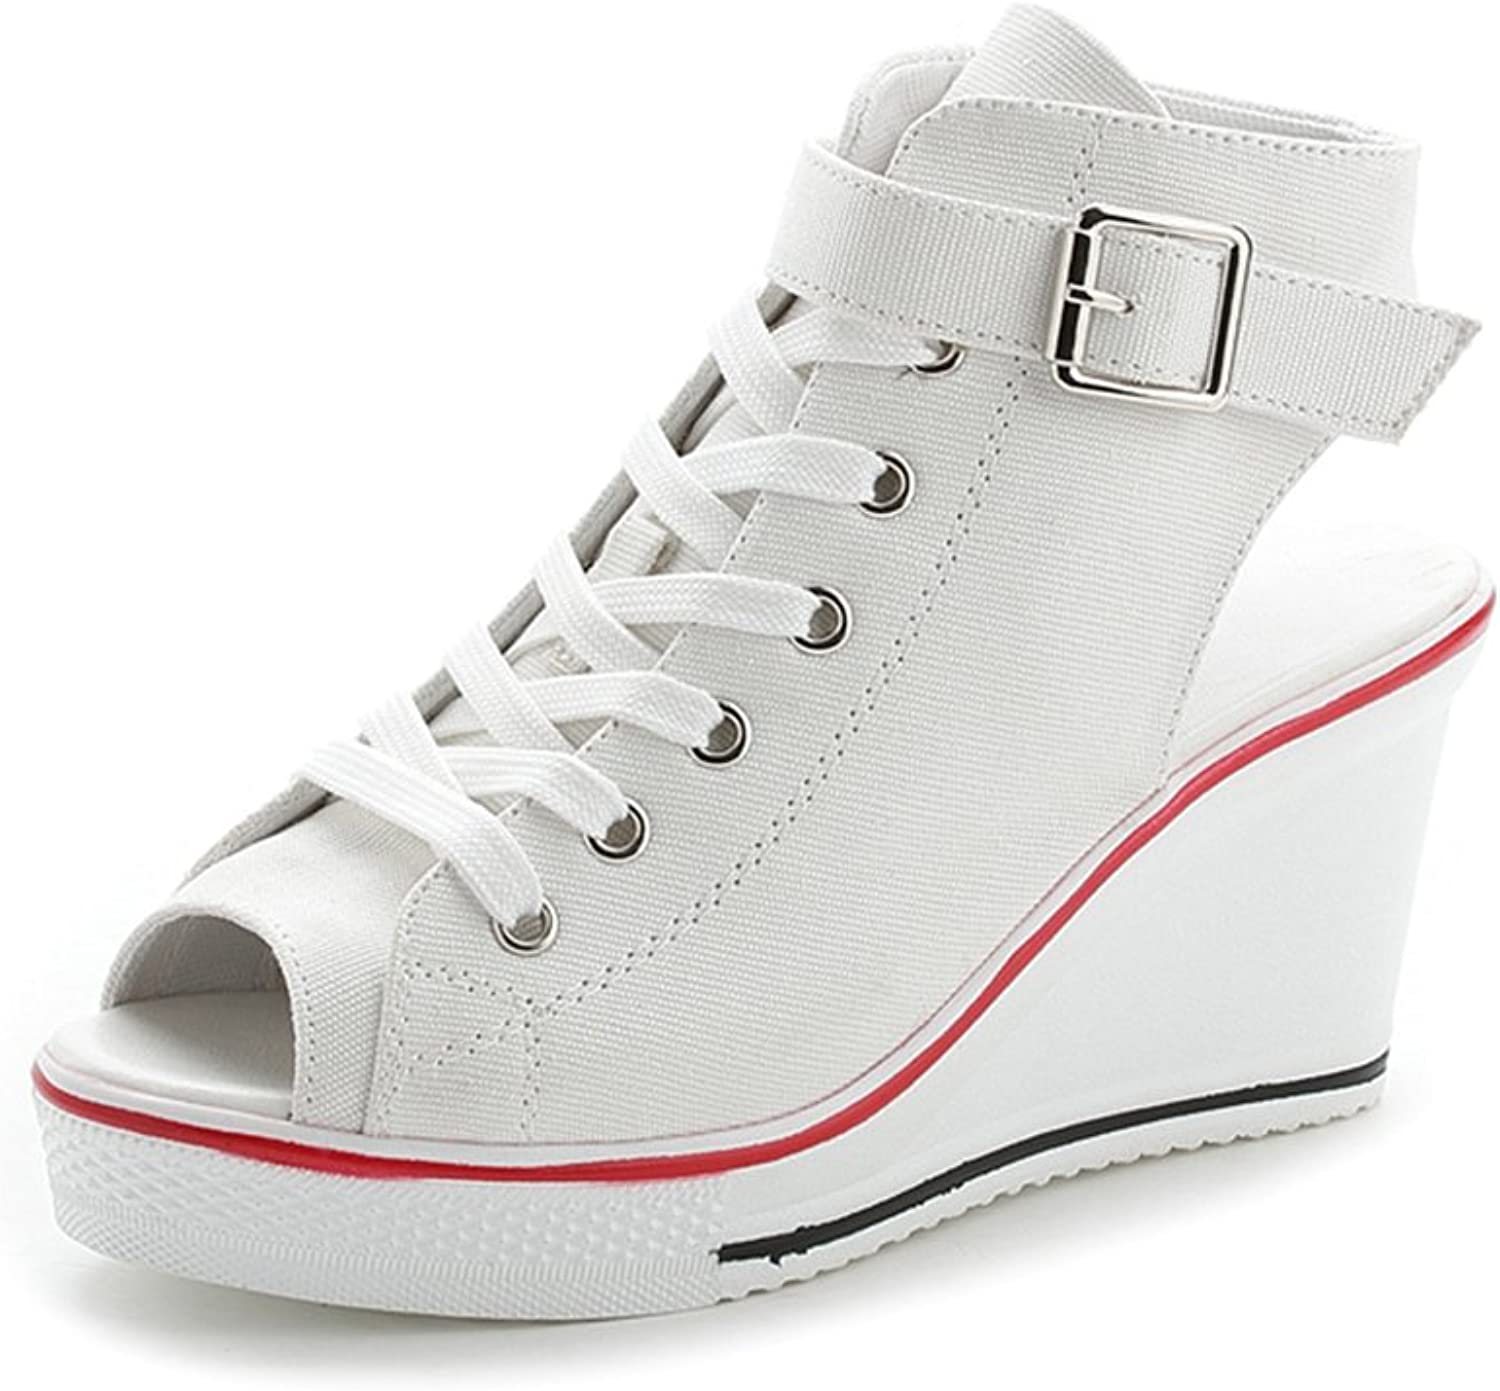 Women's Canvas shoes High-Heeled Platform Wedge Sneaker Peep Toe Sandals